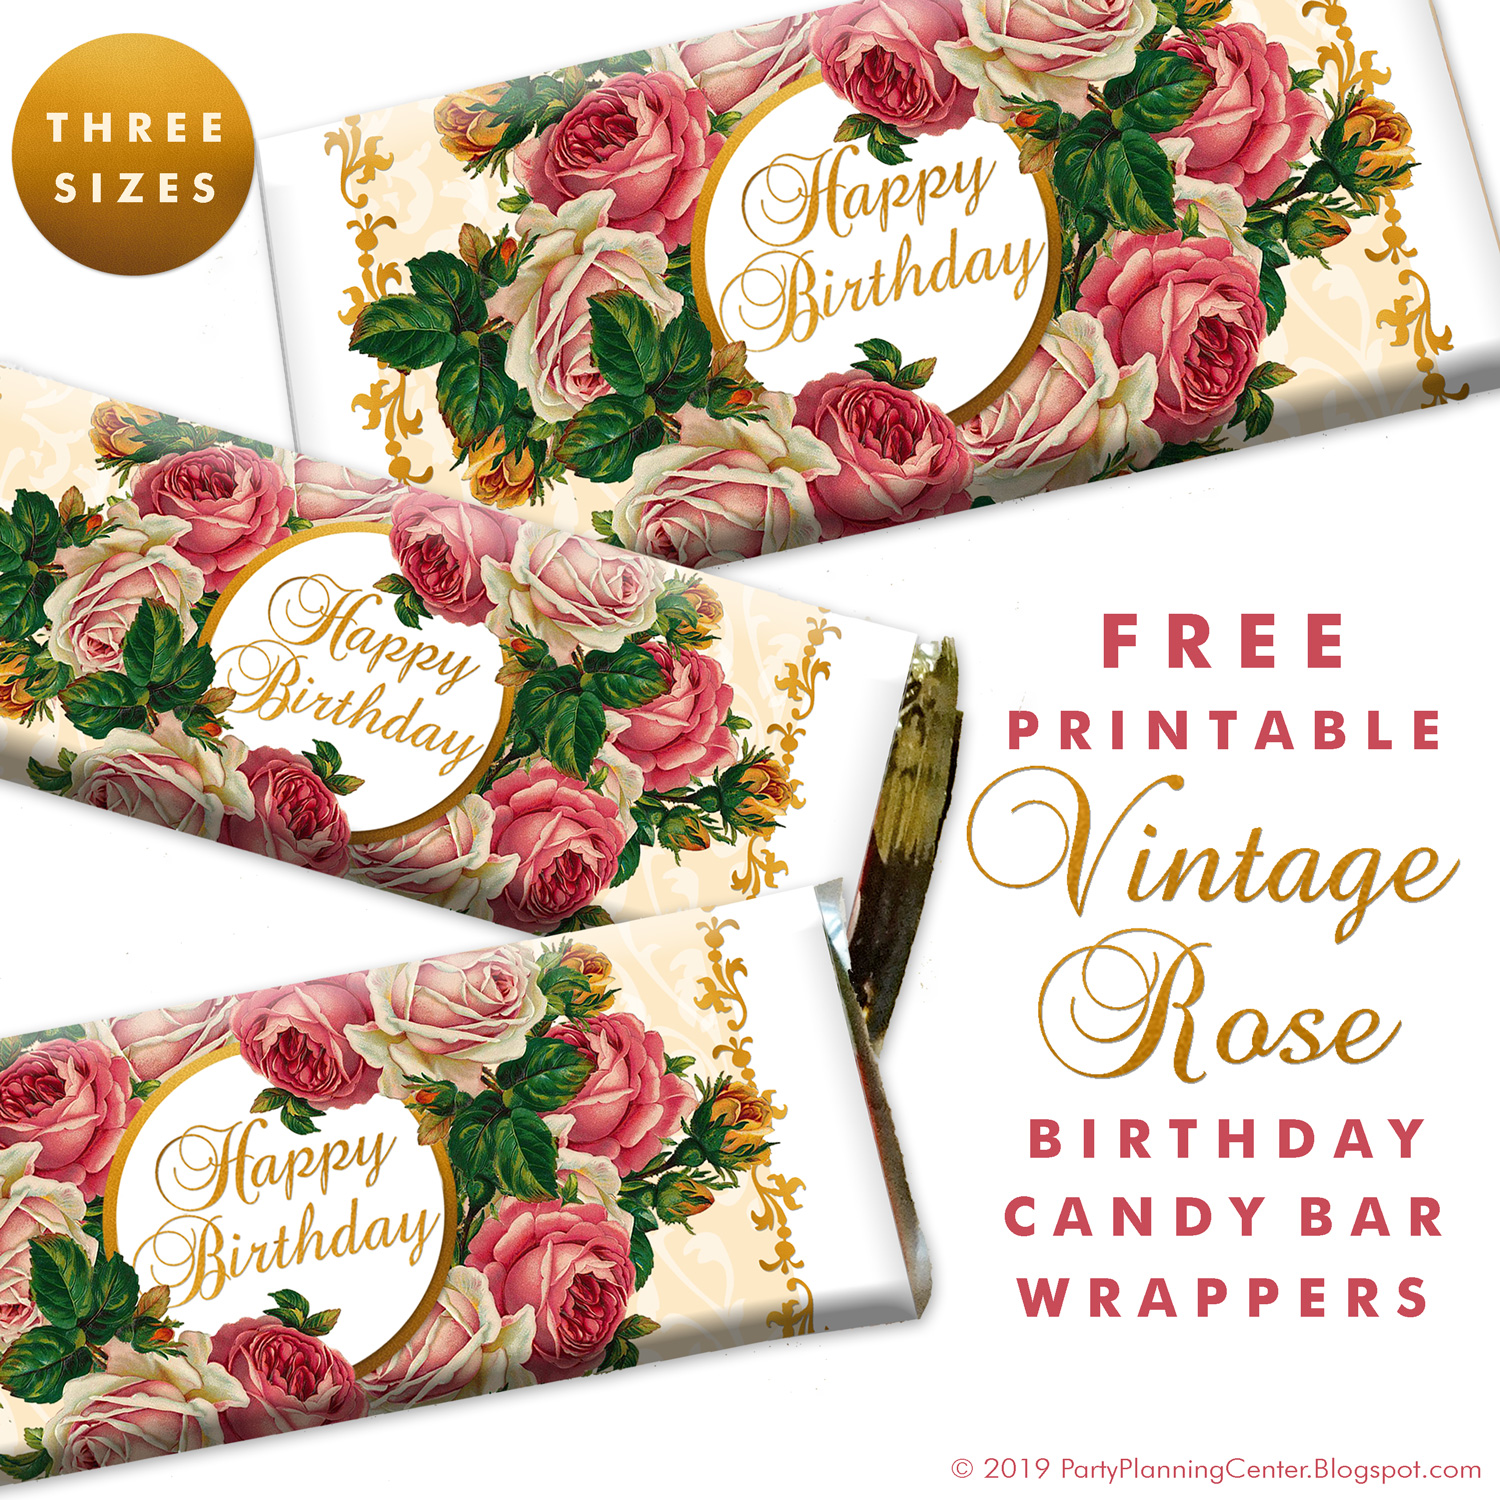 graphic about Free Printable Birthday Candy Bar Wrappers identified as Cant uncover subsution for tag [article.system]--\u003e Free of charge